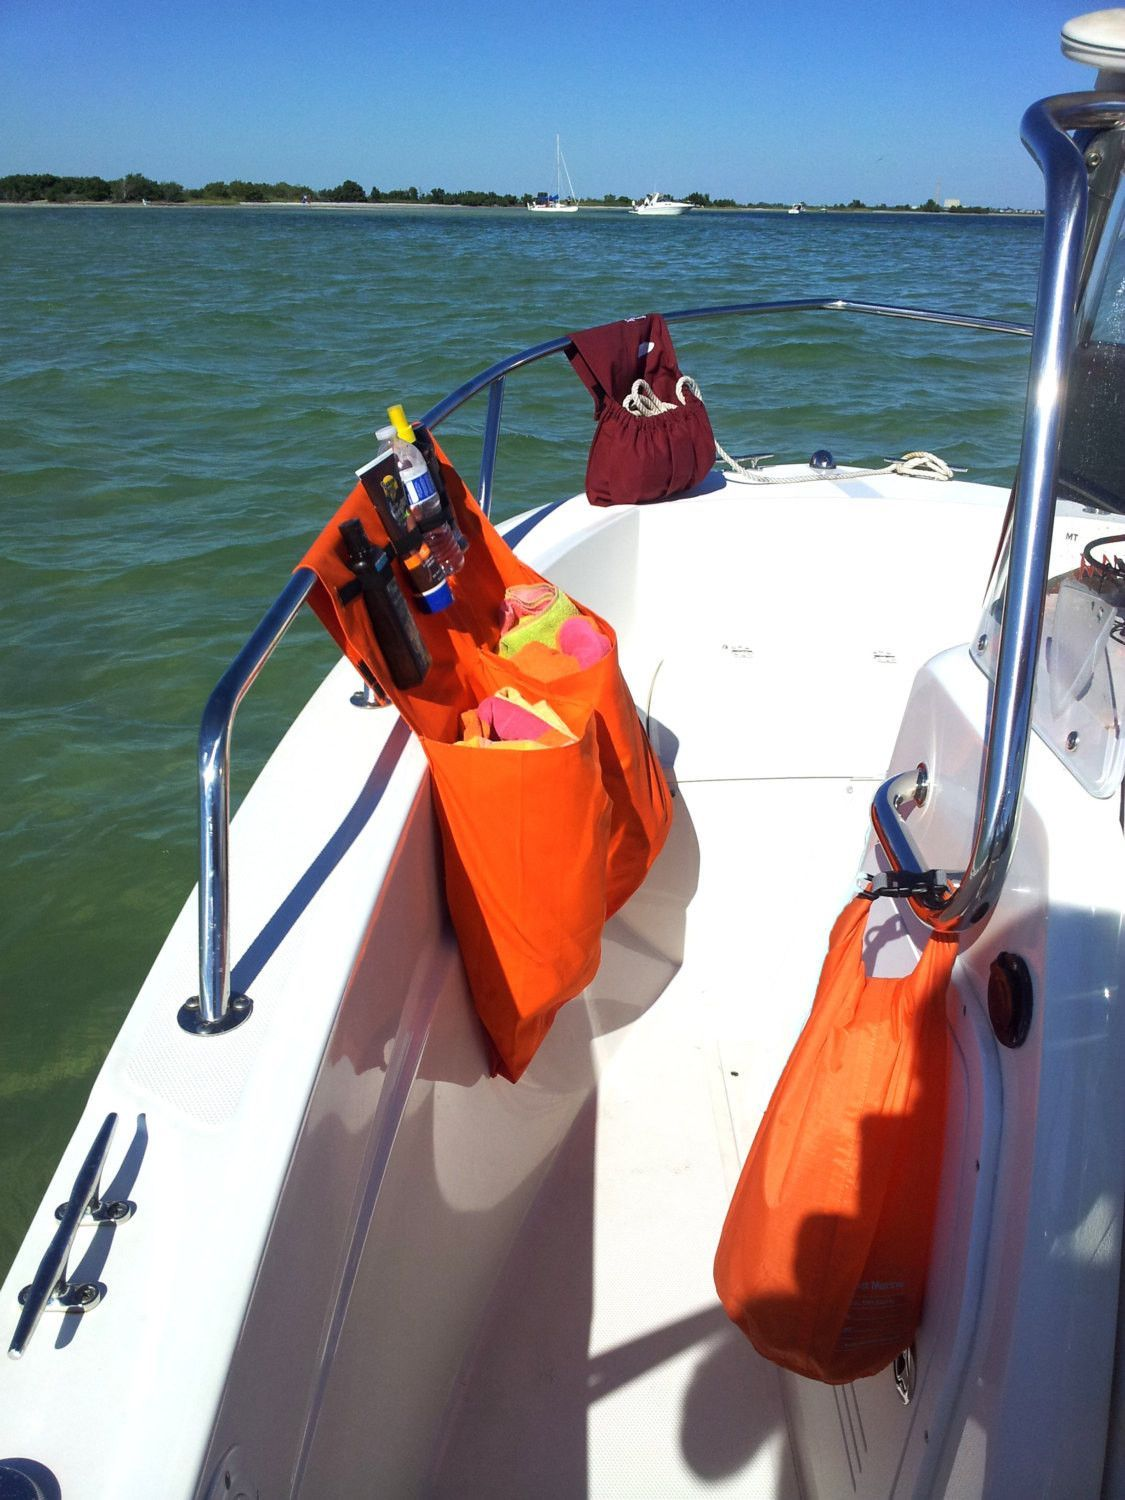 Surfmonkey Marine Storage Organizer Bags Are Designed Of Extremely Durable Fabric That Is Mold And Mildew Resistant Strength Velcro Used To